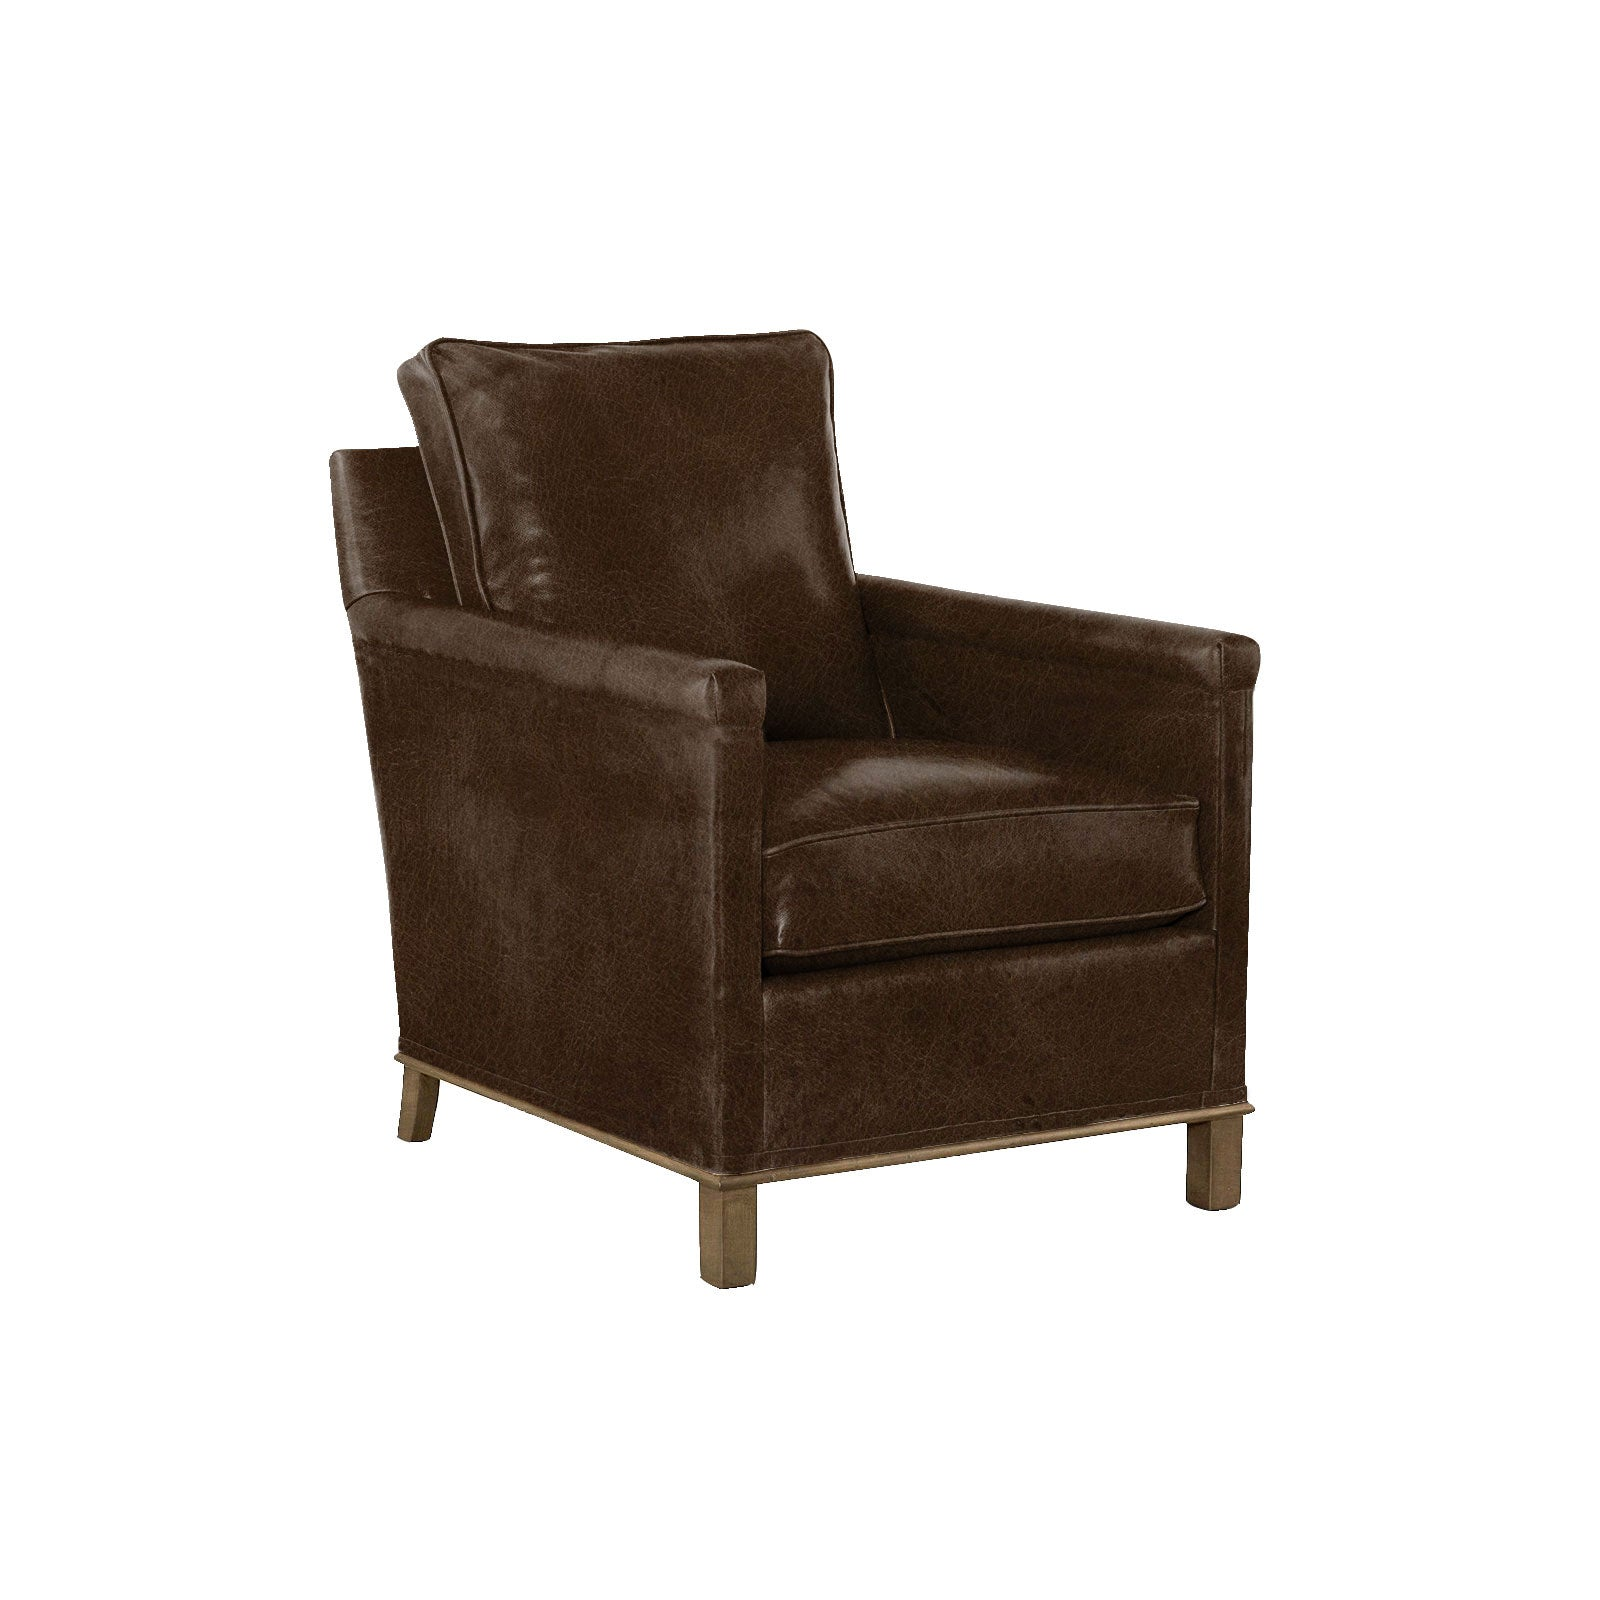 Amelia Leather Chair